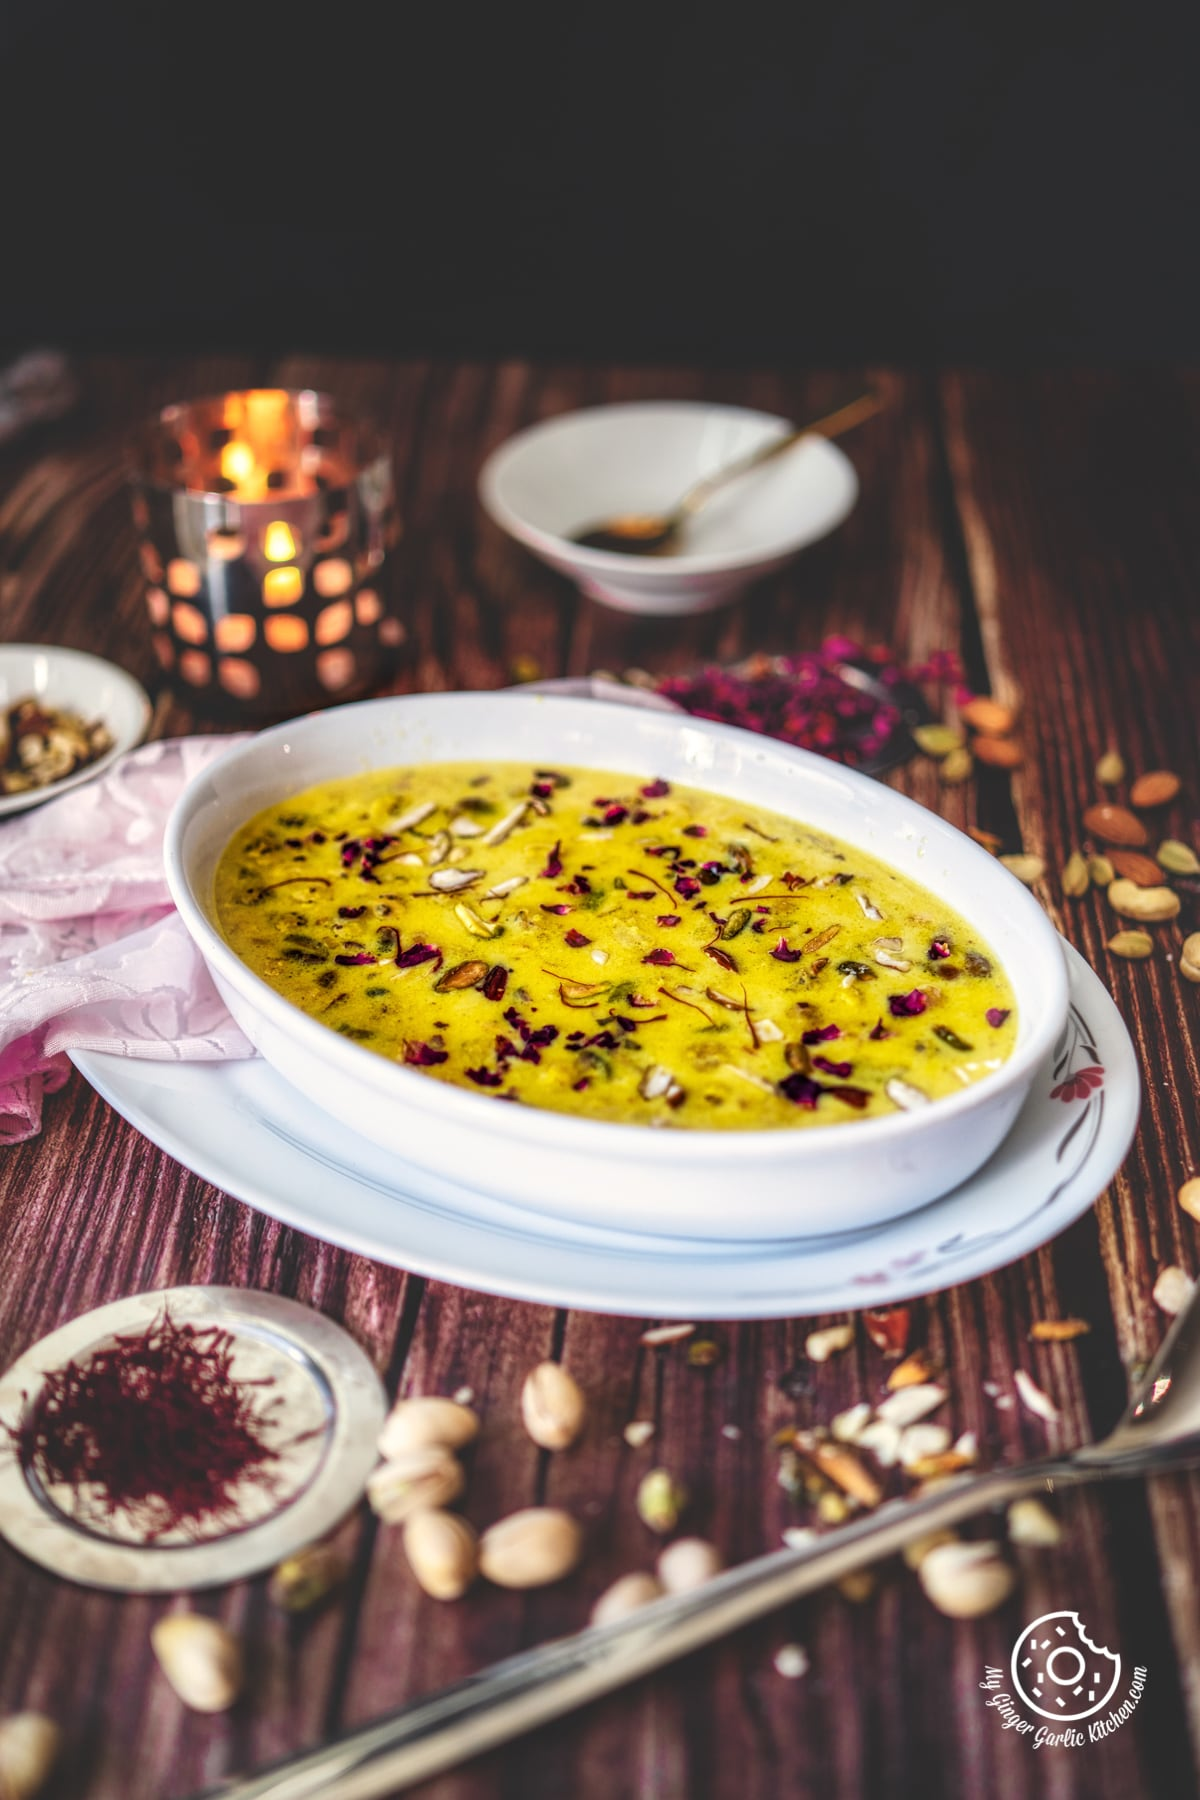 makhana kheer in a white oval shaped bowl and a candle in the background